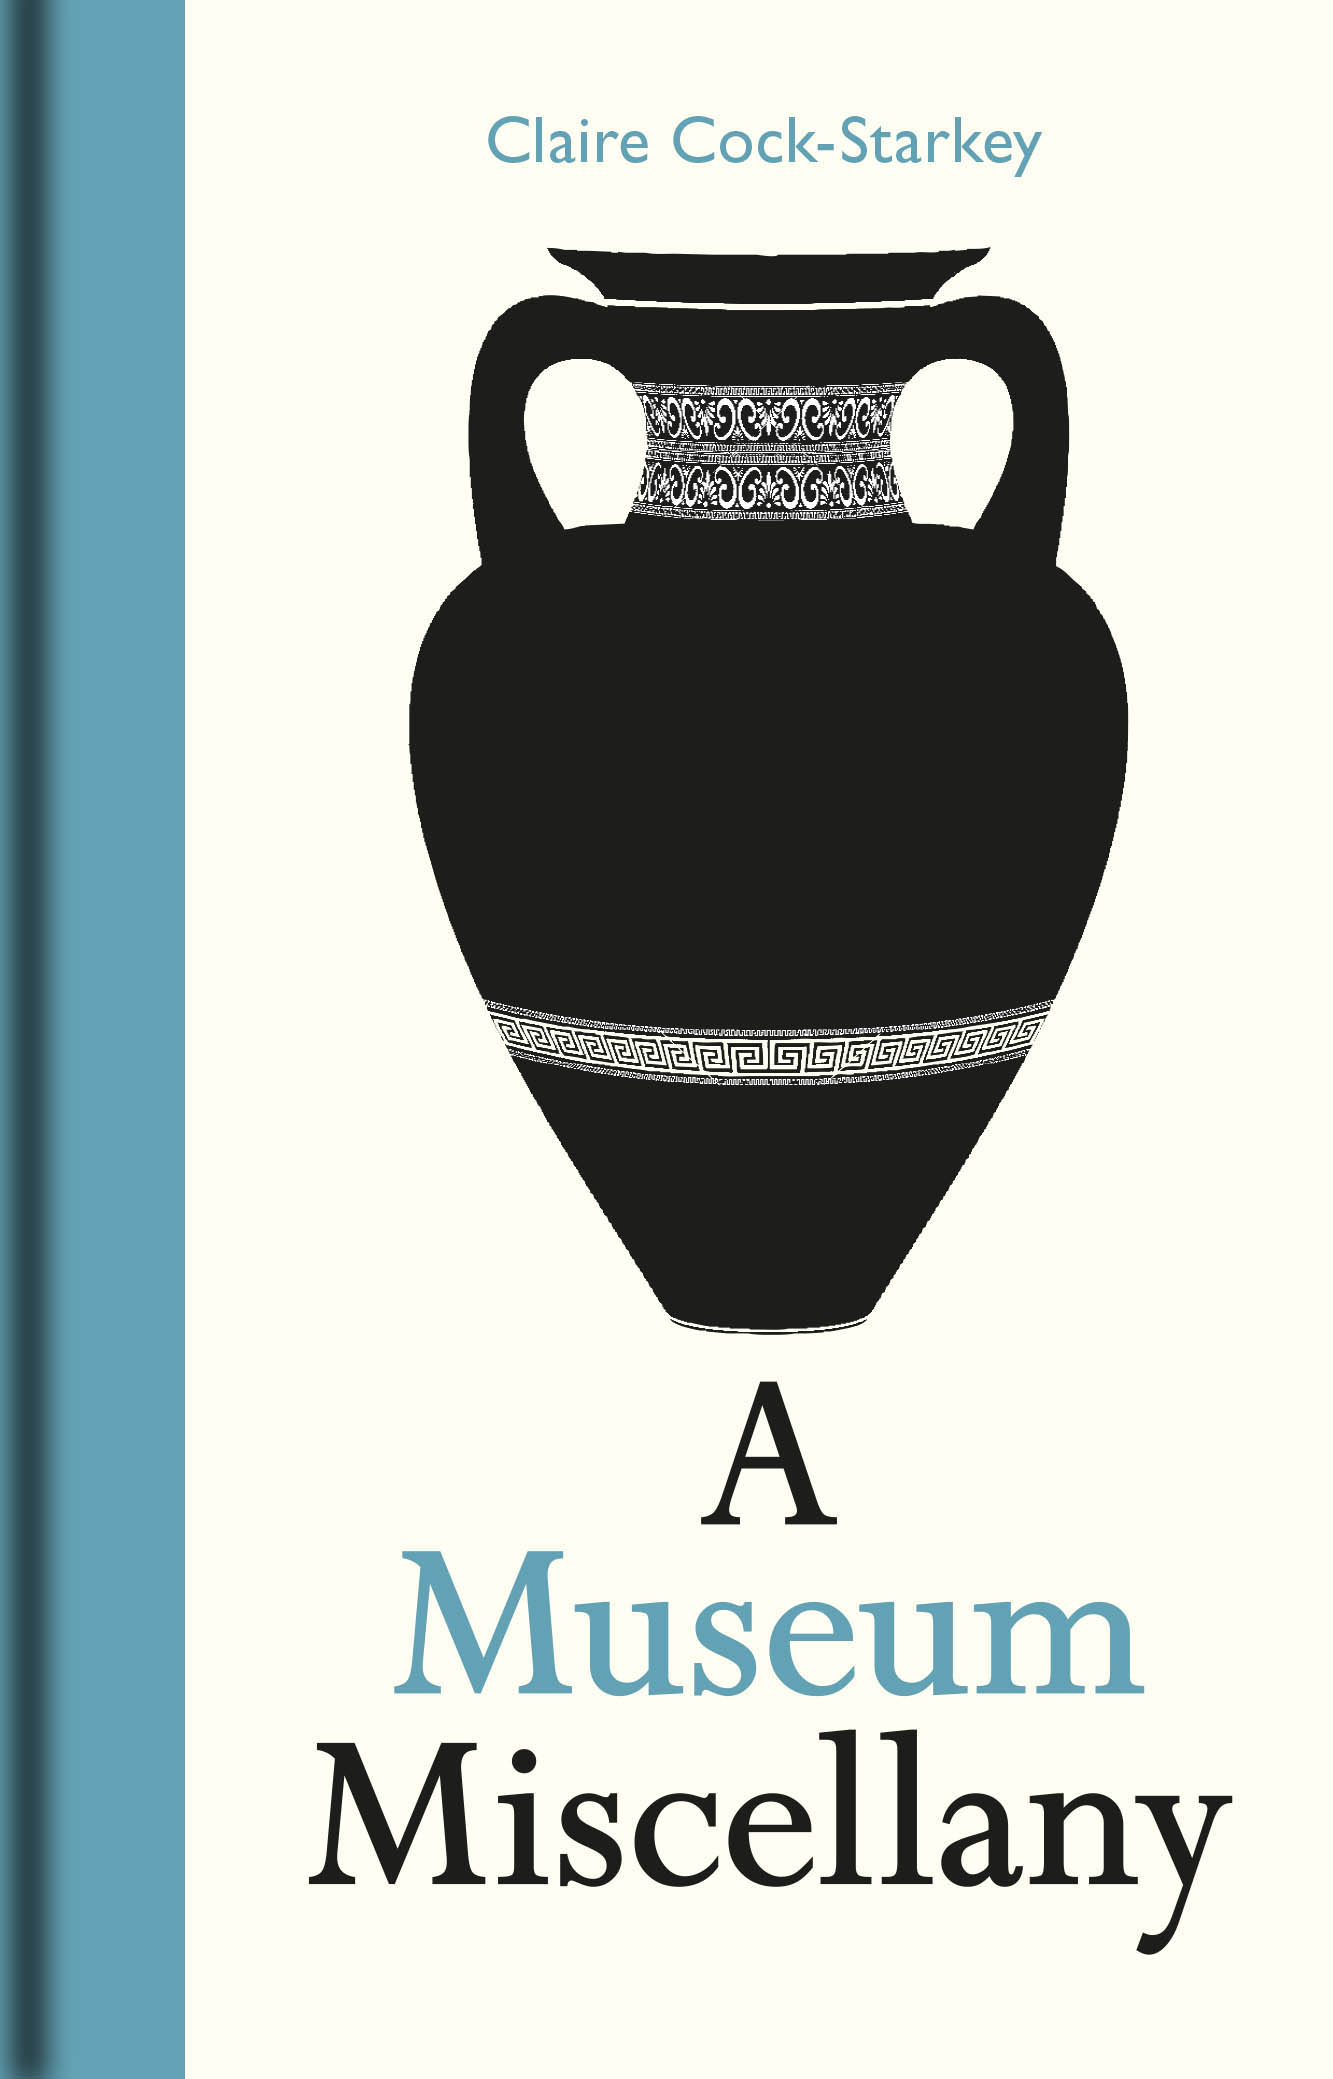 Museum Miscellany